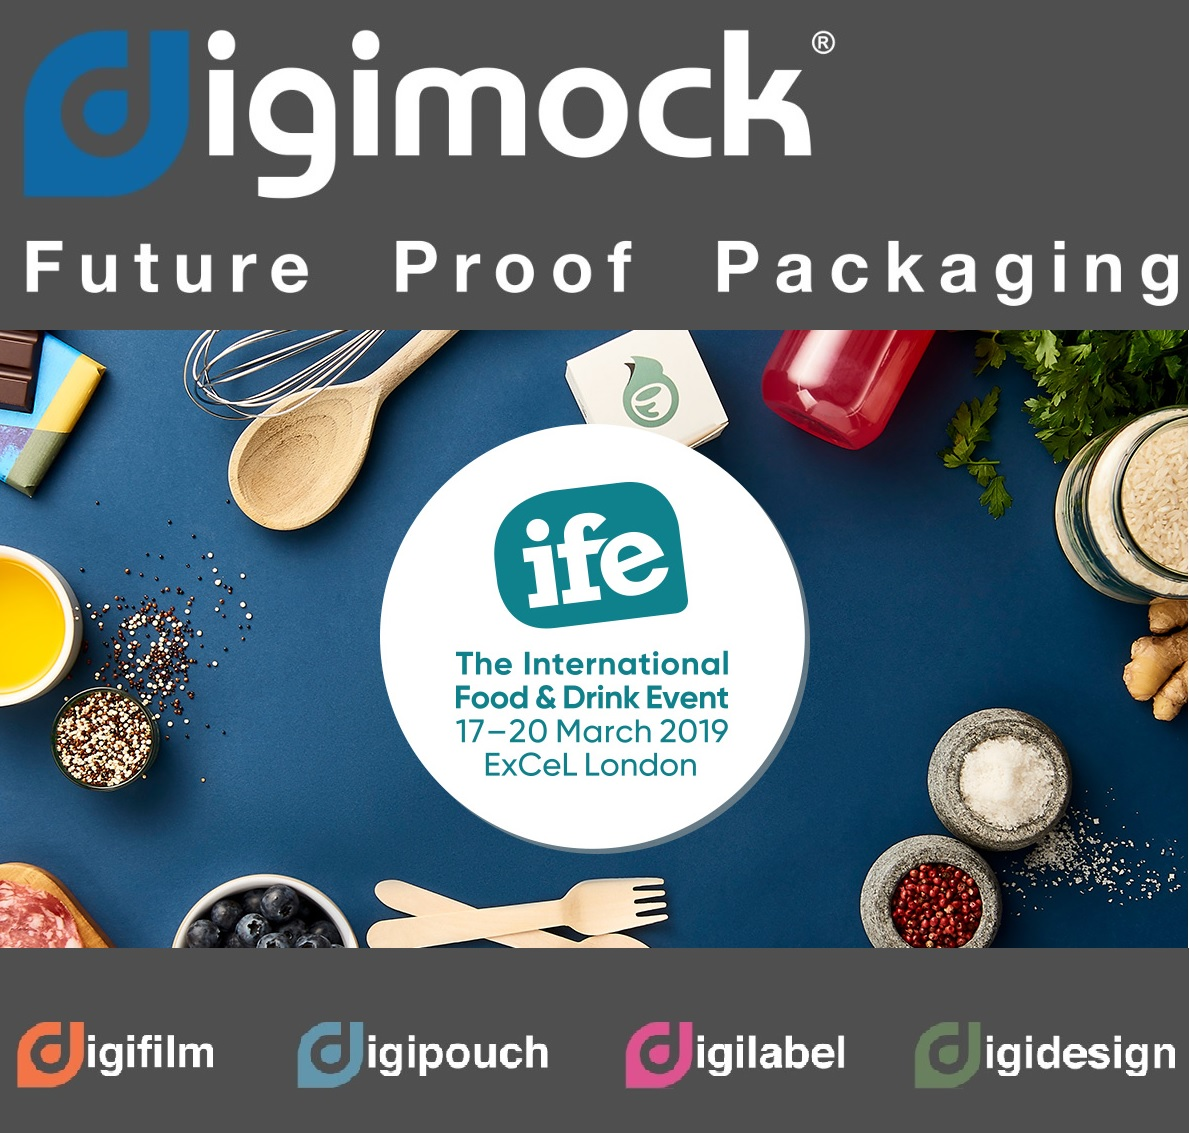 Why is Digimock exhibiting at IFE 2019